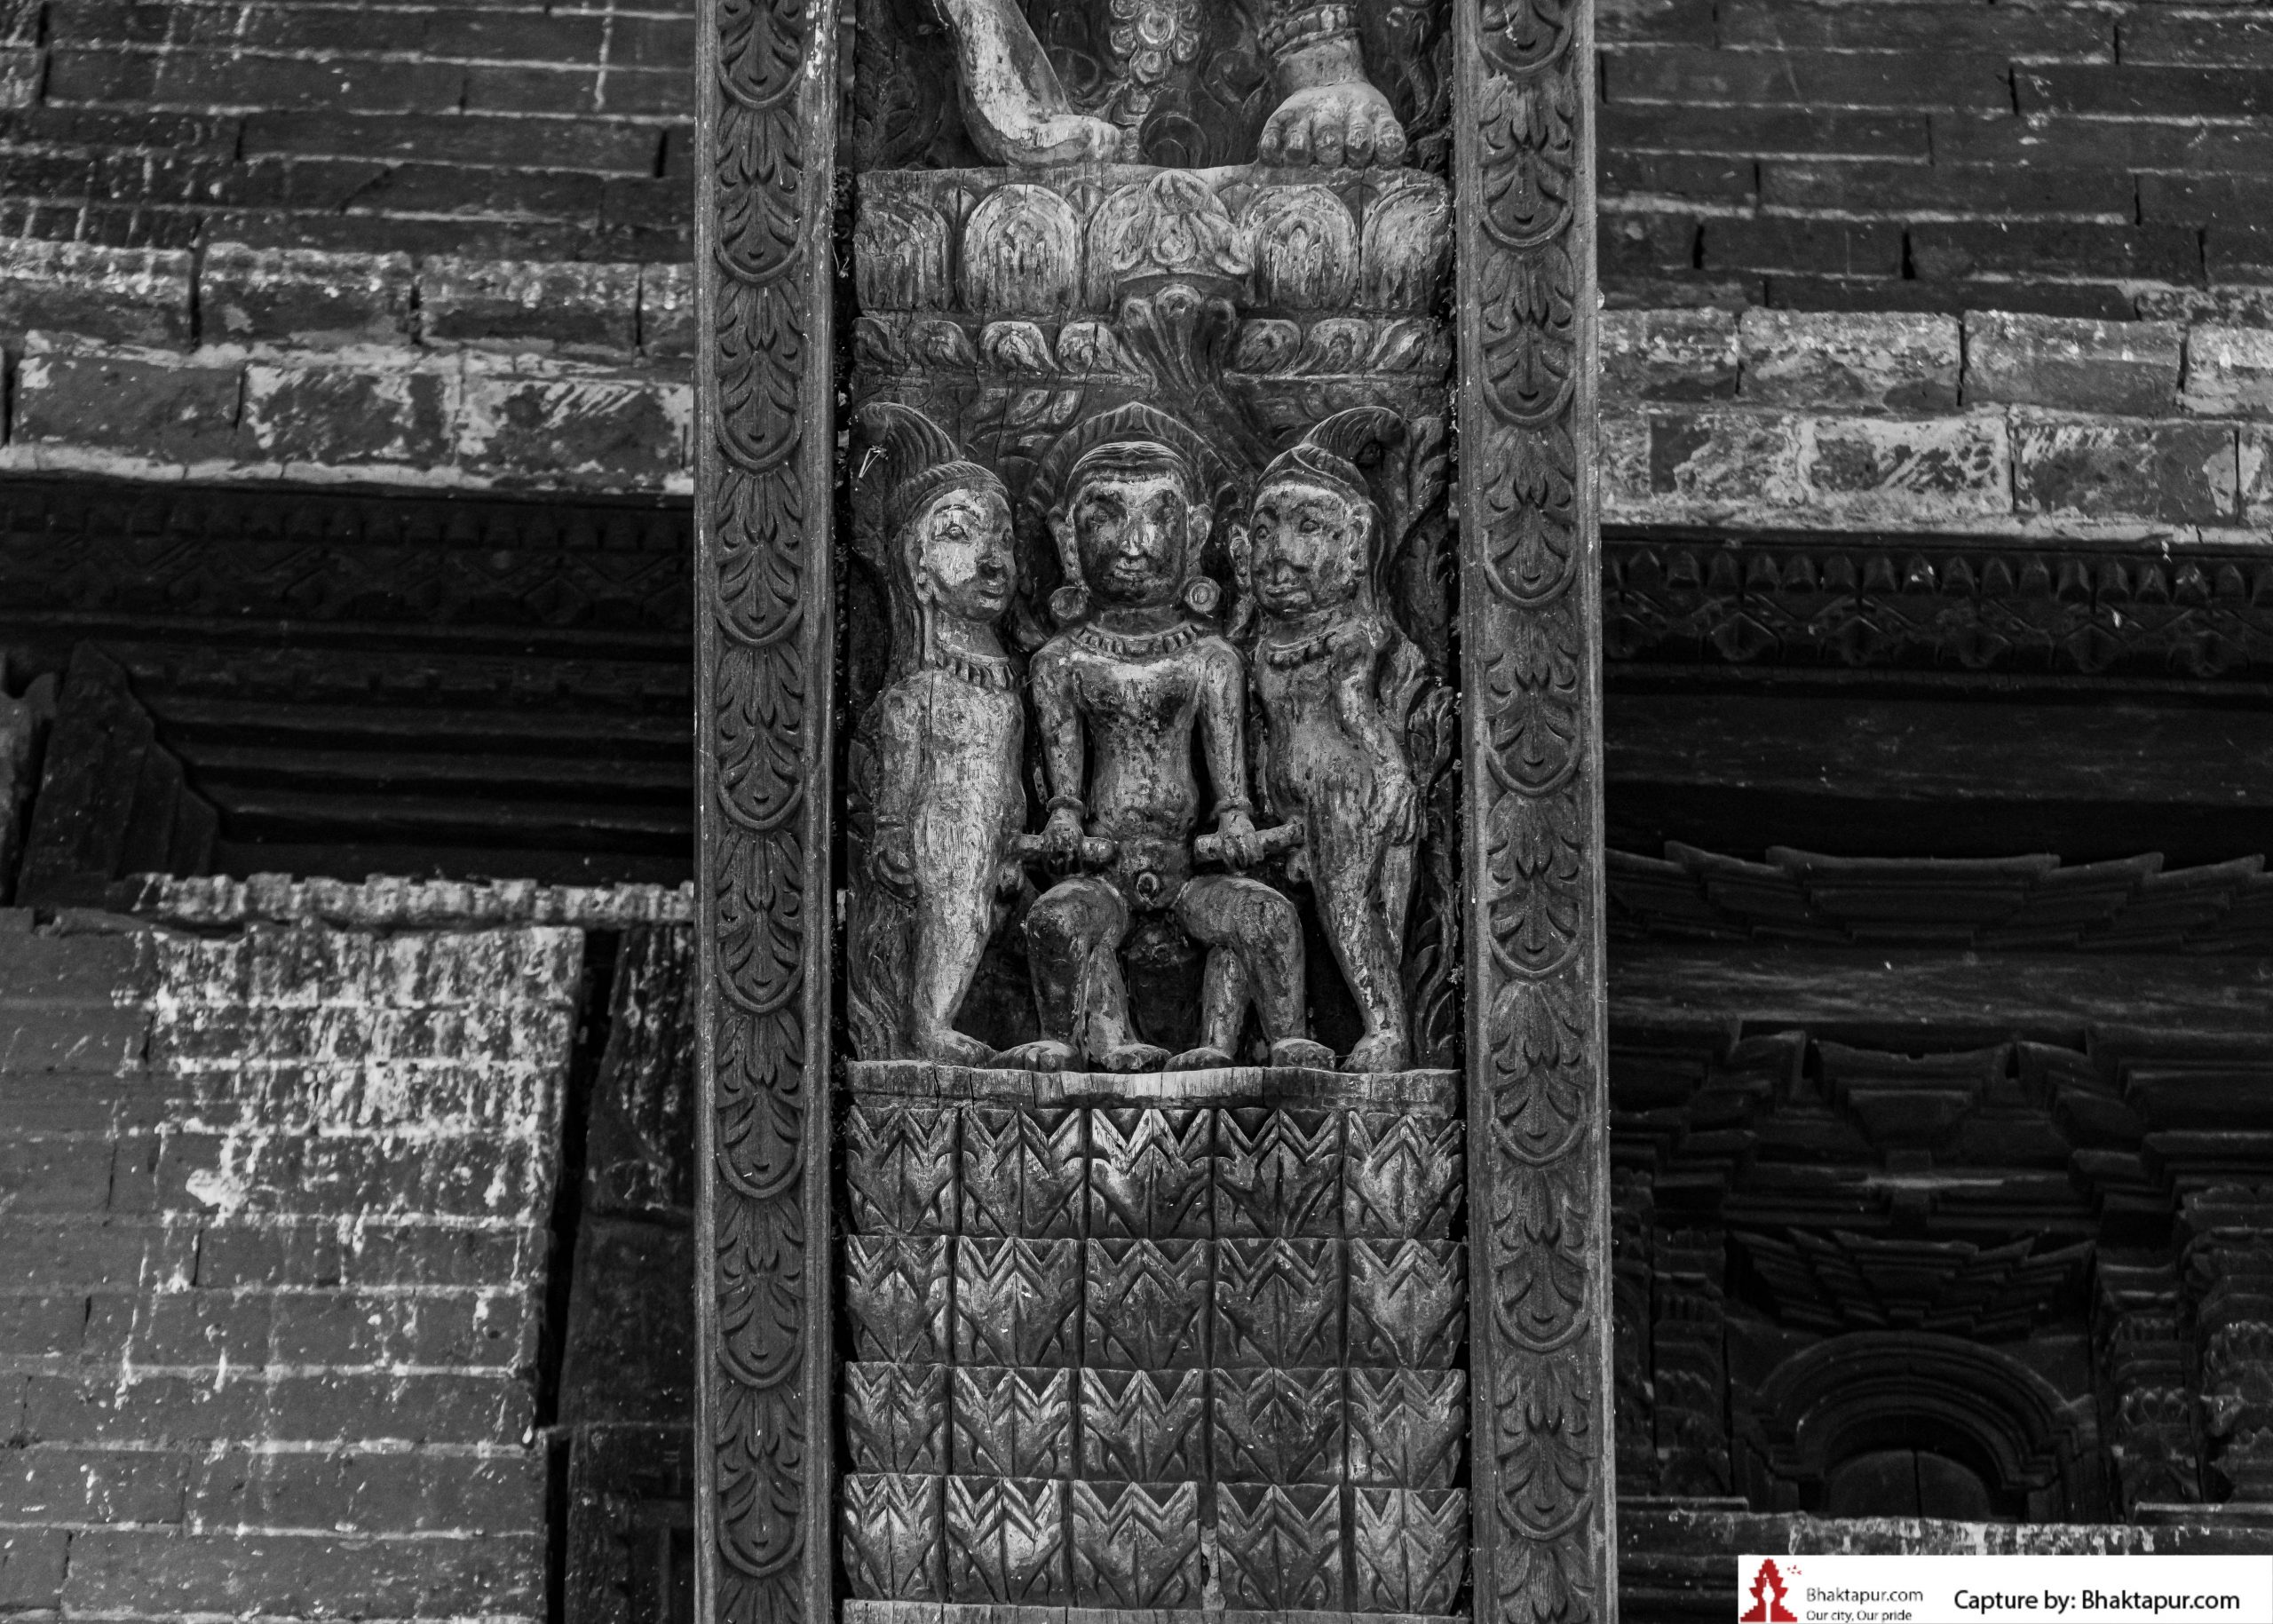 https://www.bhaktapur.com/wp-content/uploads/2021/08/erotic-carving-97-of-137-scaled.jpg